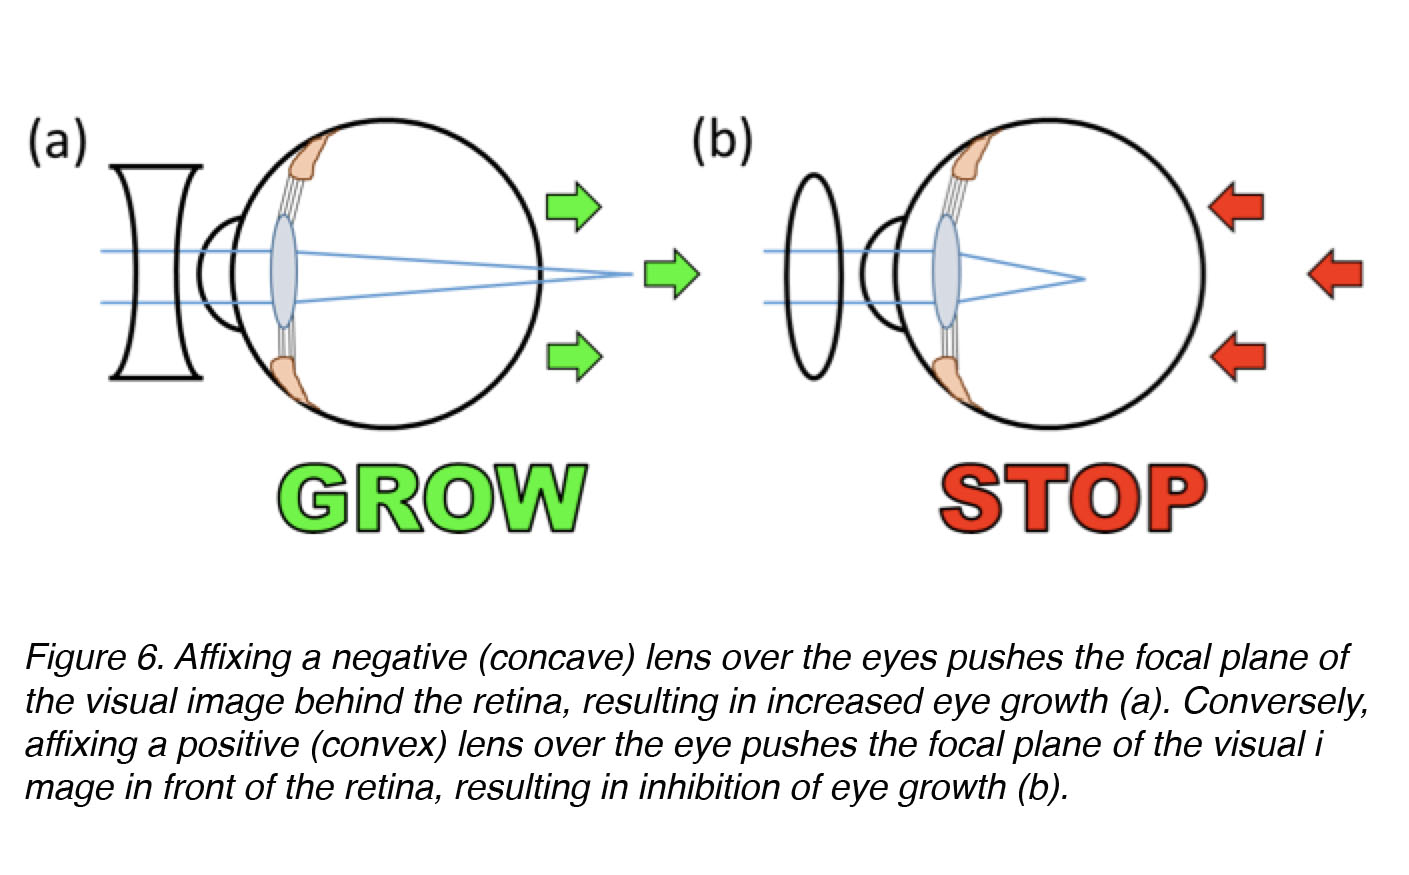 hight resolution of figure 6 affixing a negative concave or diverging lens over the eye pushes the focal plane of the visual image behind the retina inducing an increase in